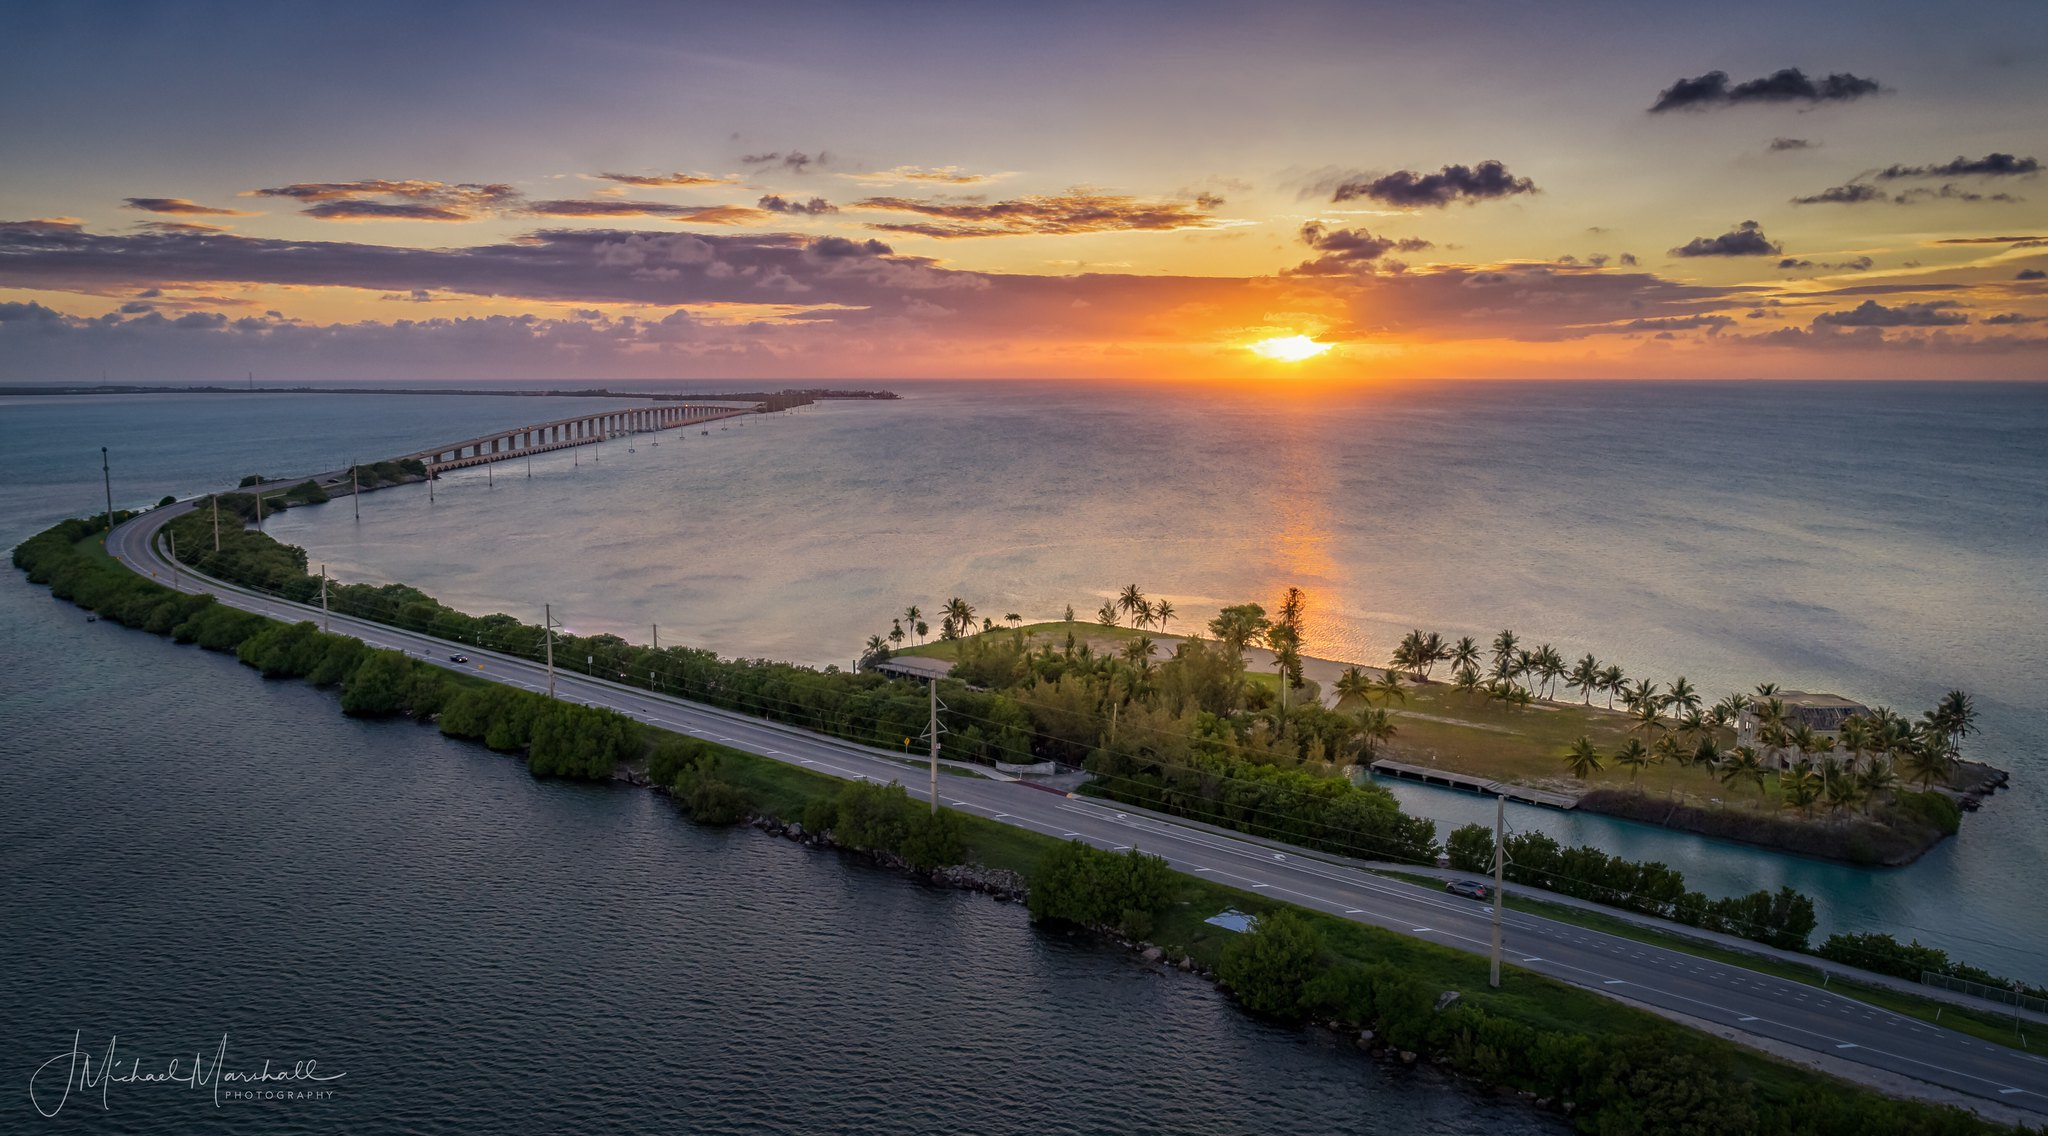 Best Road Trips In the Usa: Florida Keys, the Overseas Highway